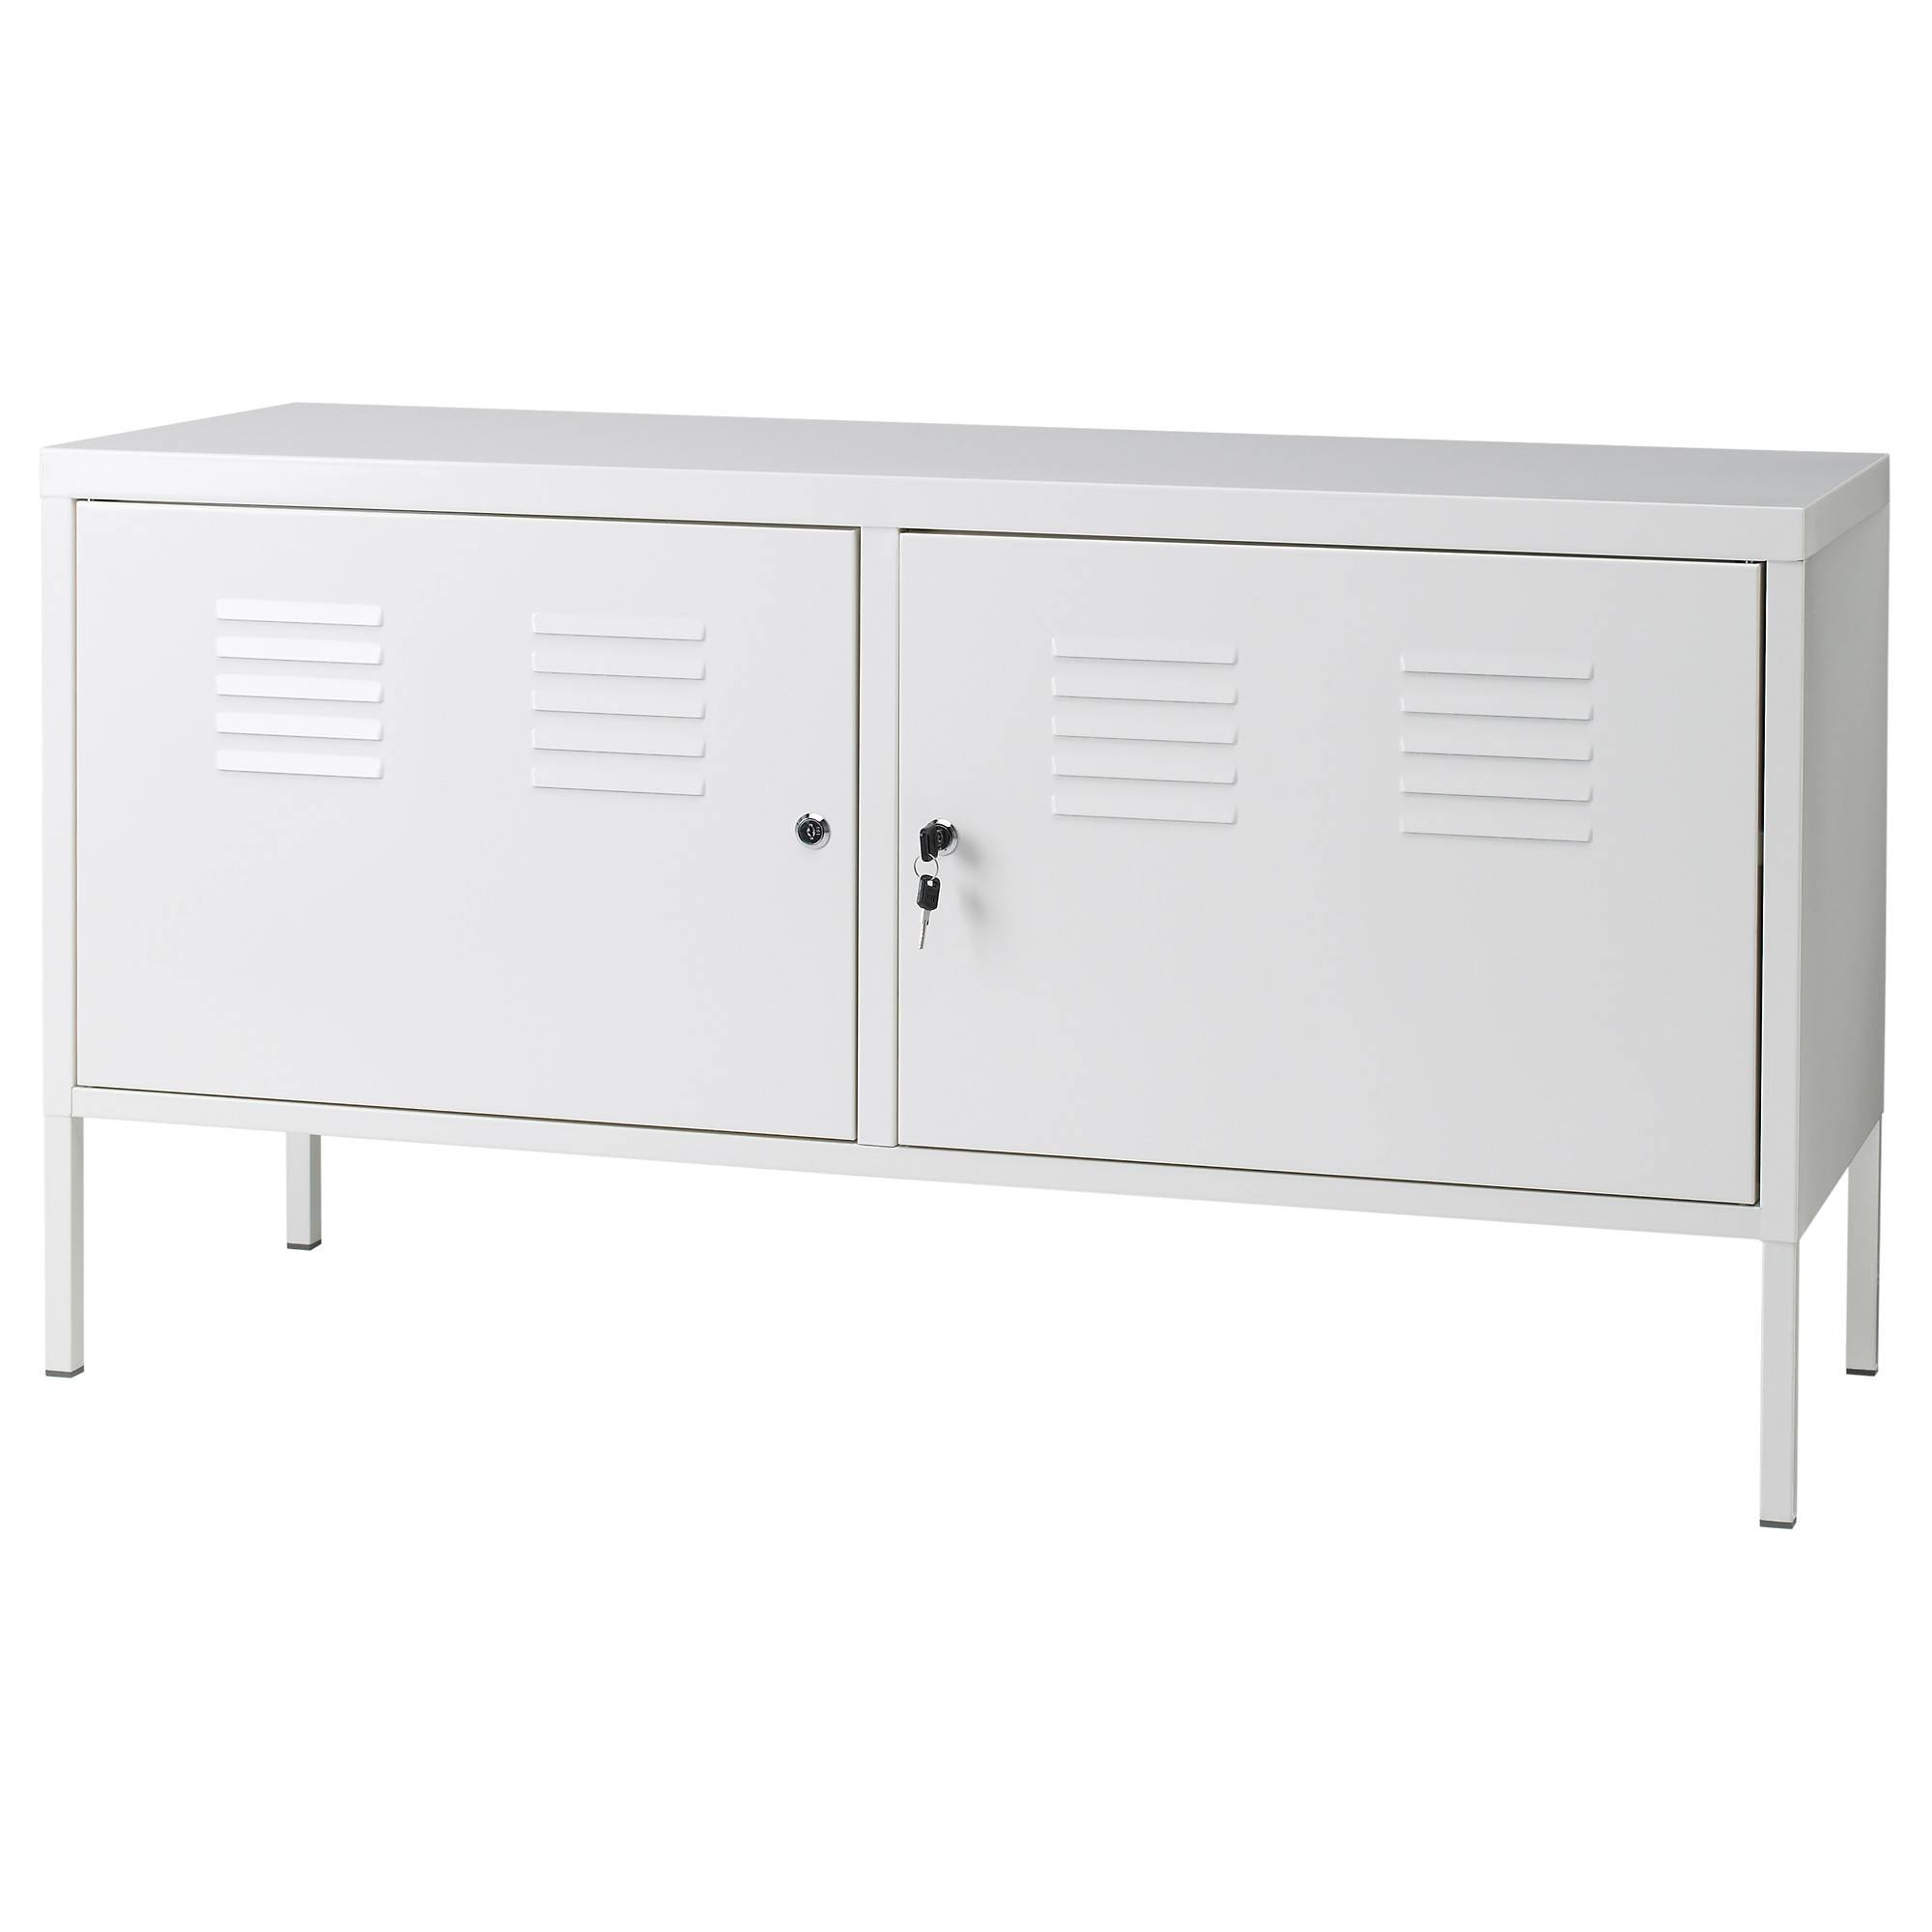 Ikea Ps Cabinet White 119x63 Cm – Ikea With Regard To Sideboards Cabinets (View 10 of 15)